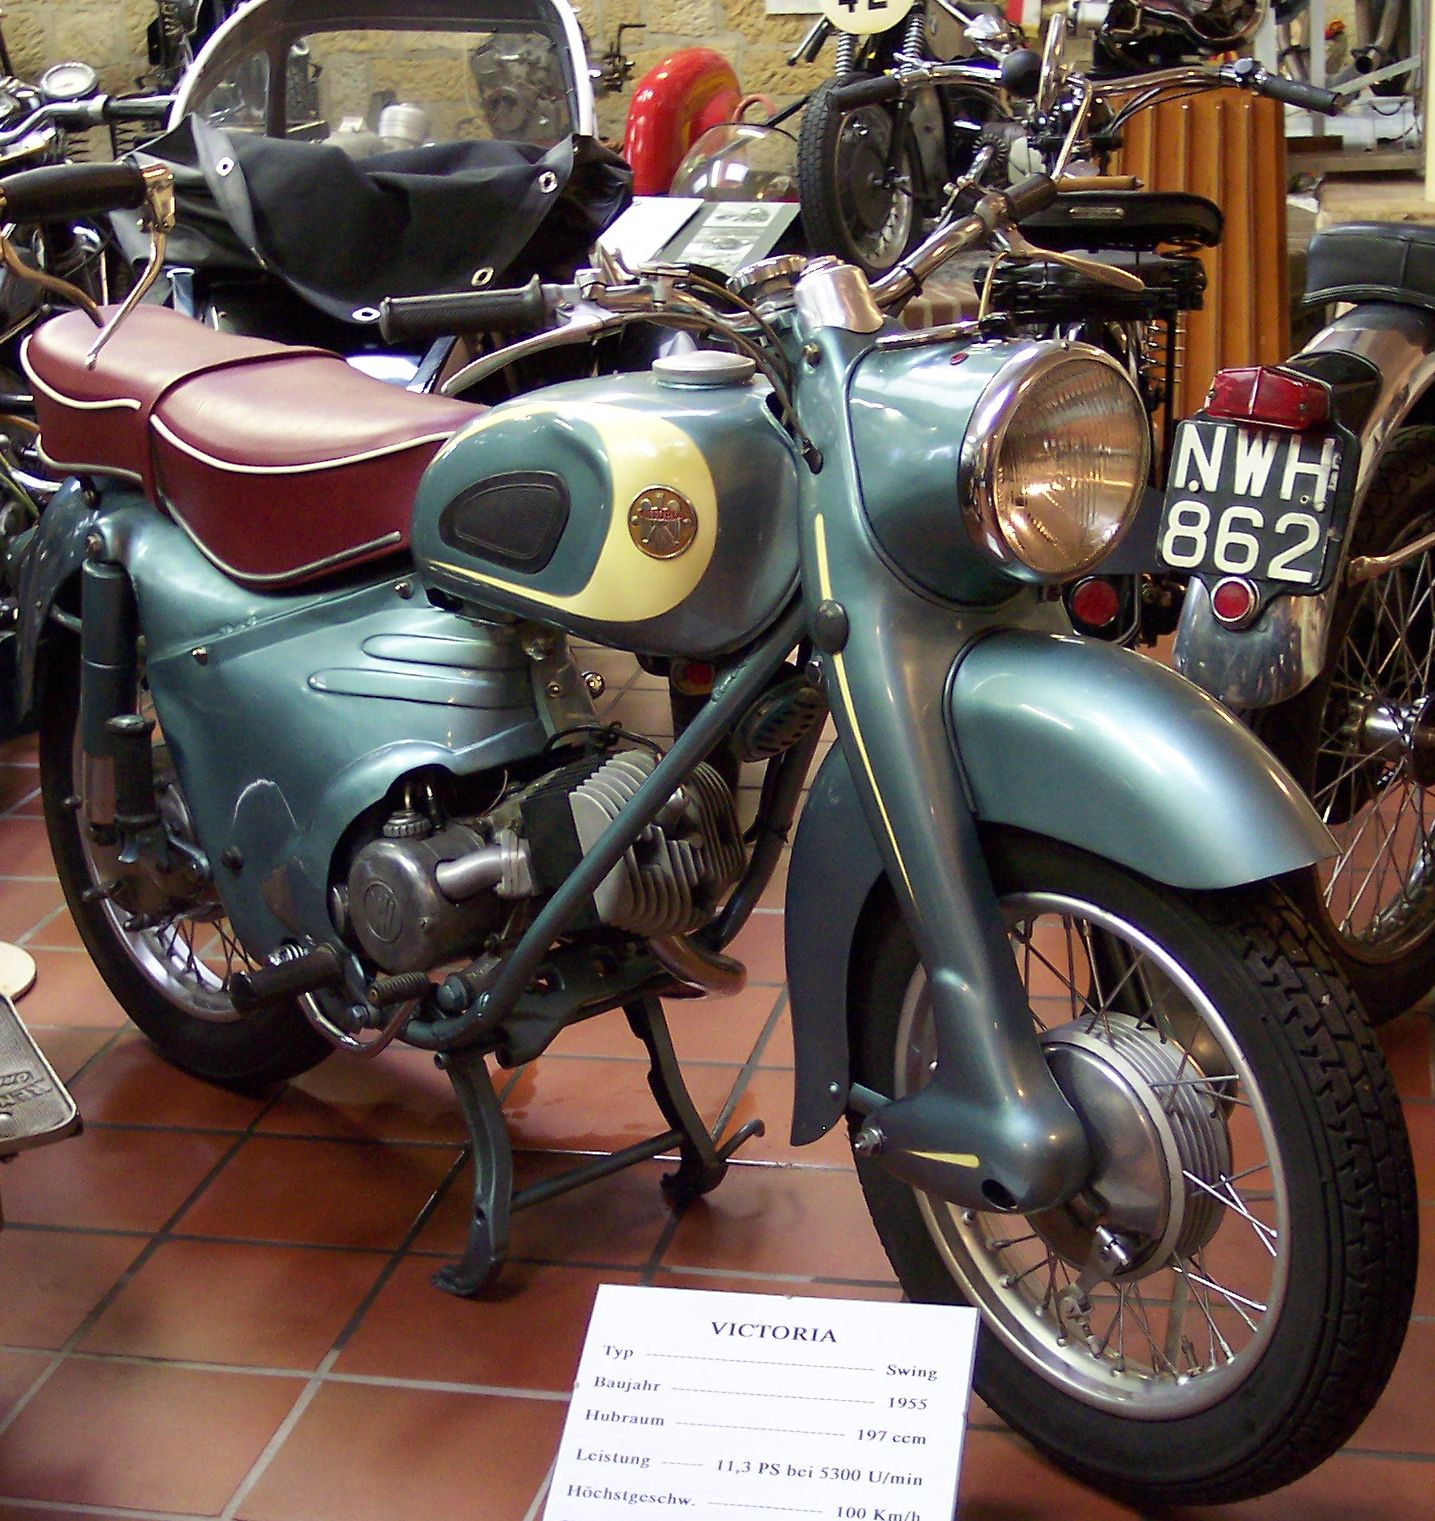 1955 Victoria KR21 Swing Motorcycle